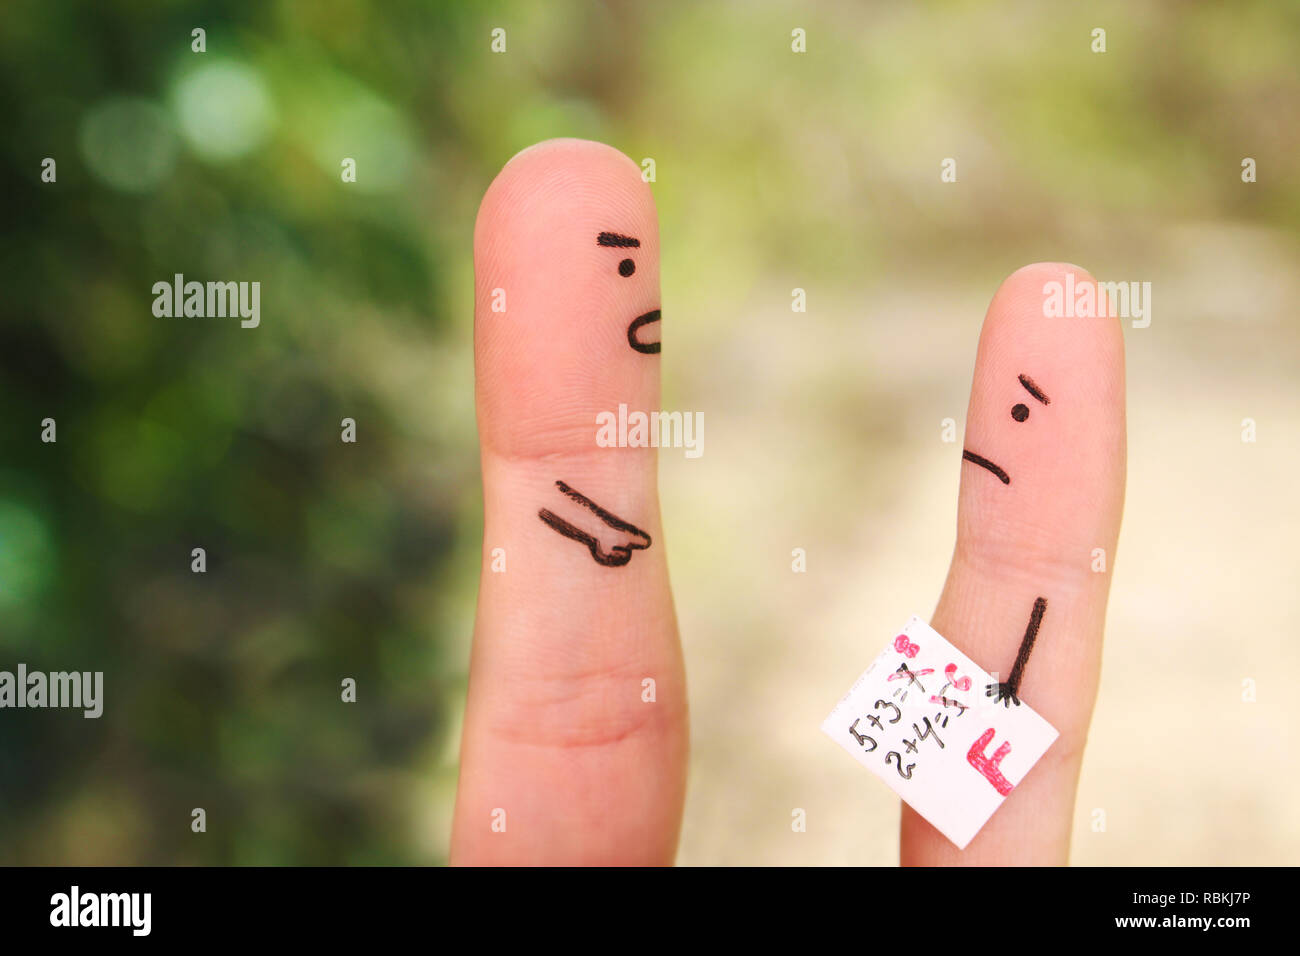 Fingers art of people. Concept of boy got a bad grade, man scolding child. - Stock Image